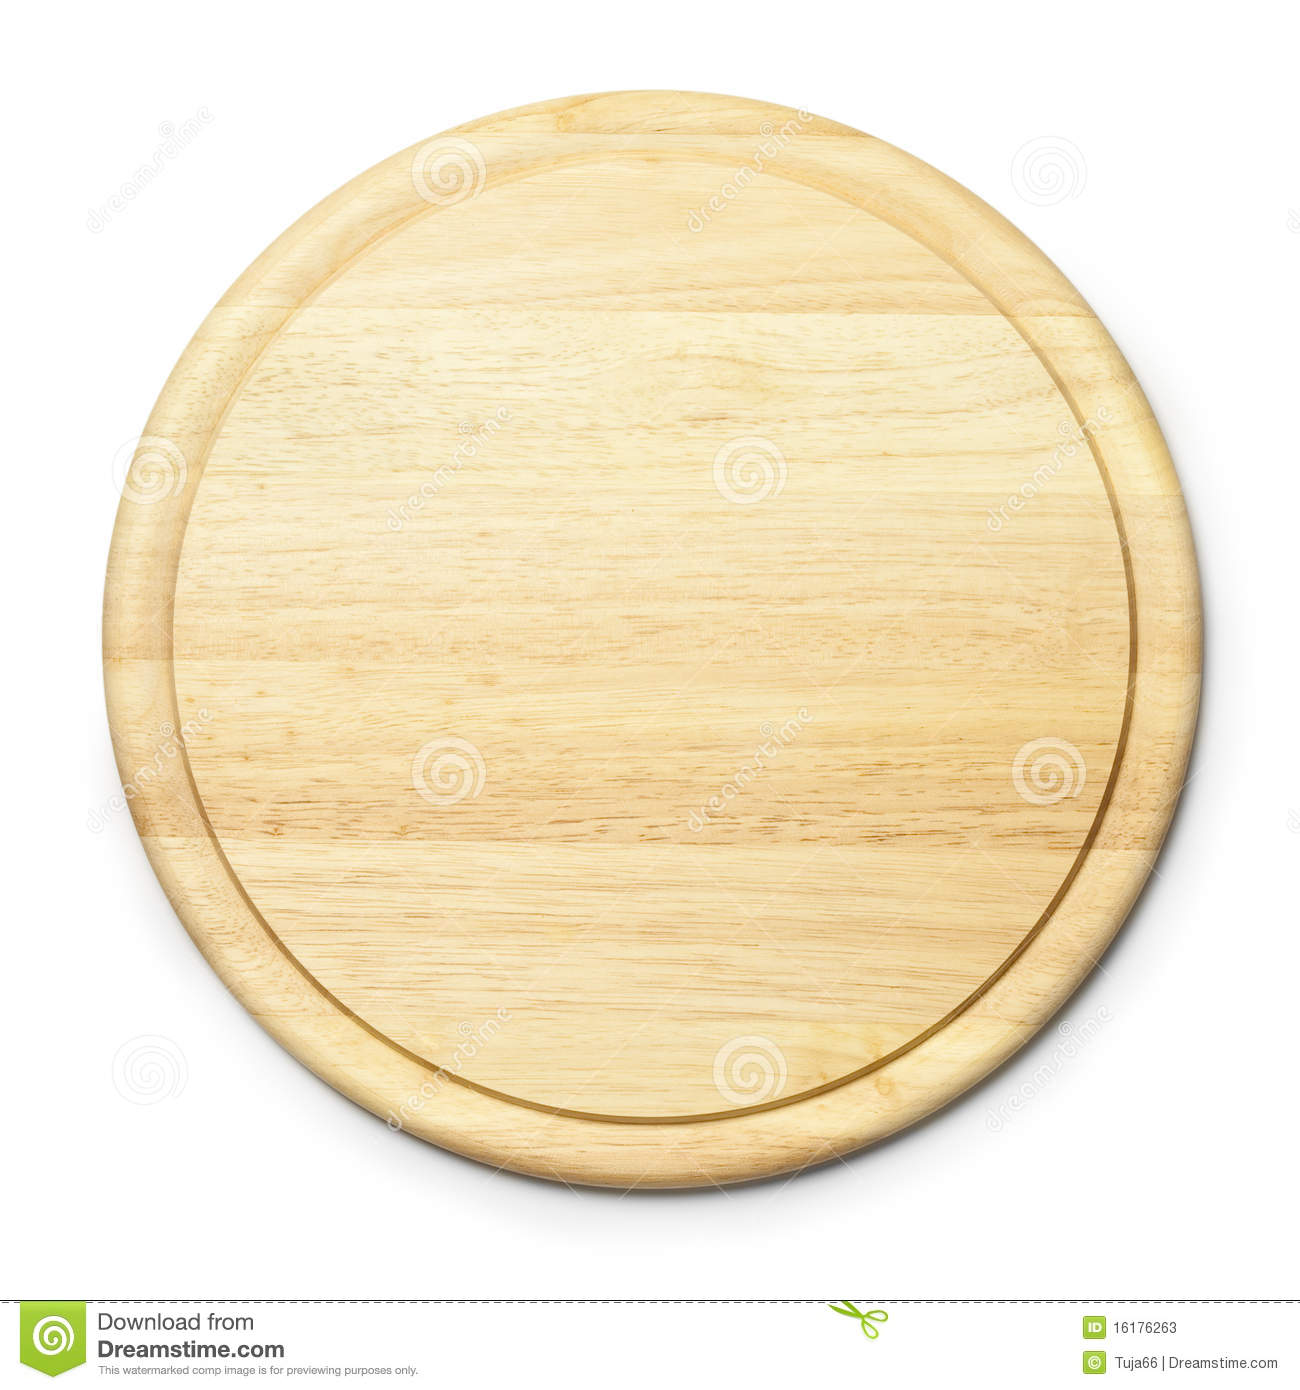 Chopping Board Stock Photos - Image: 16176263